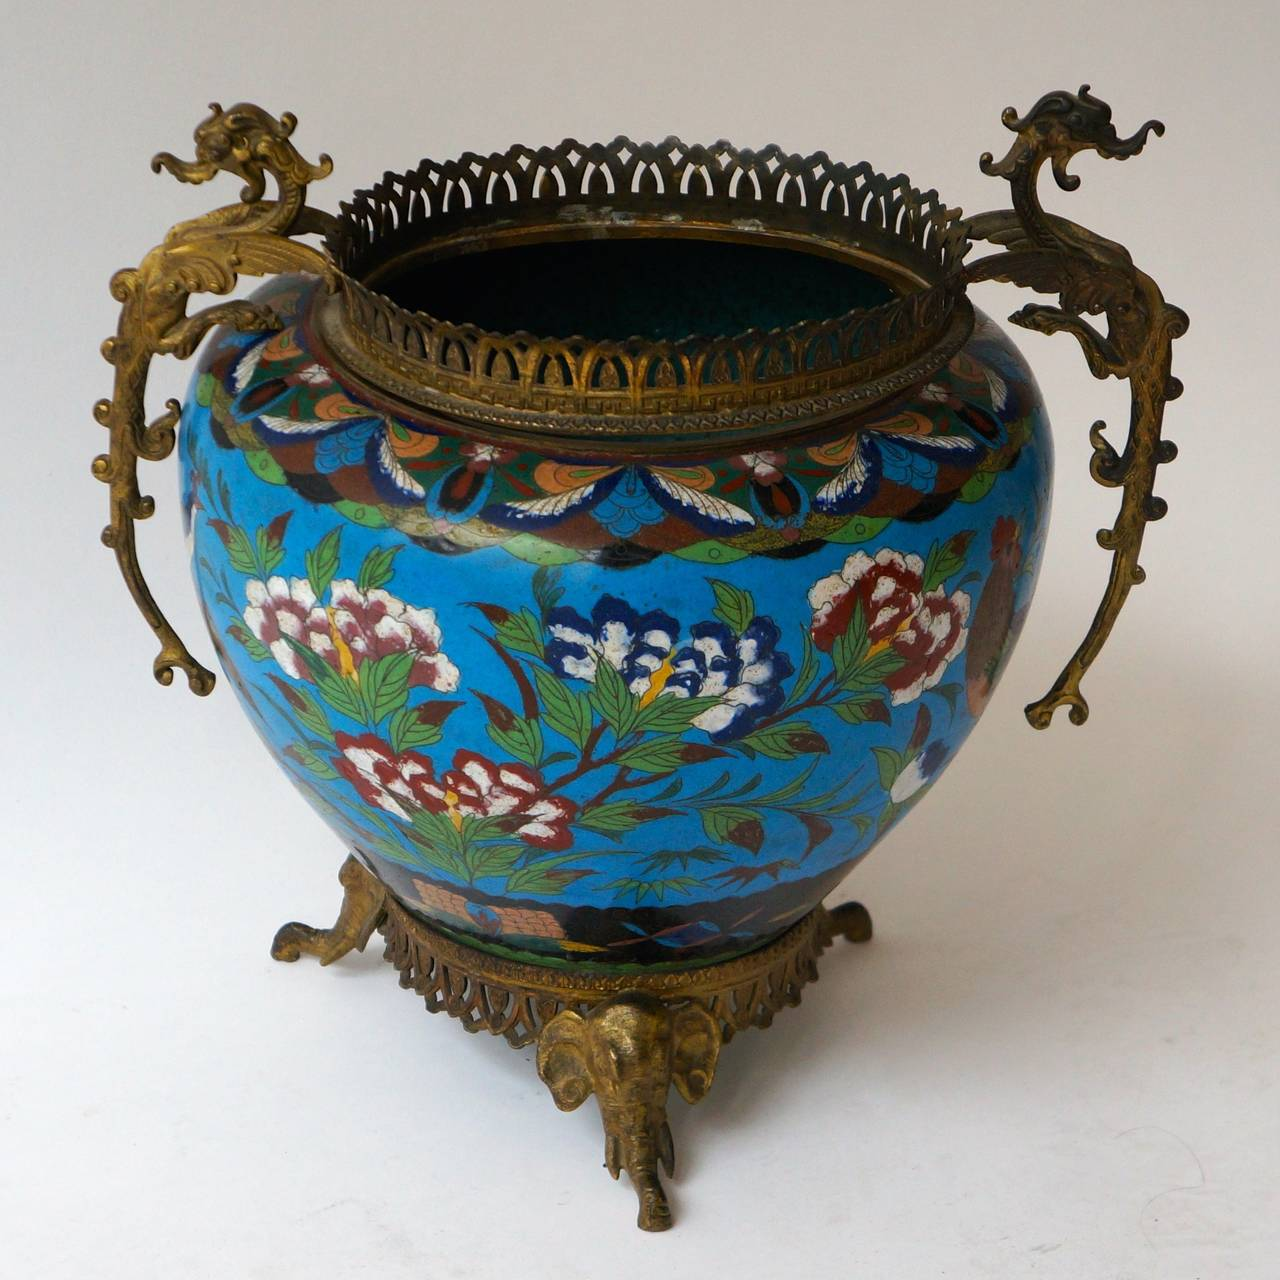 Large Chinese Cloisonné Jardinière or Planter Pot In Good Condition For Sale In Antwerp, BE